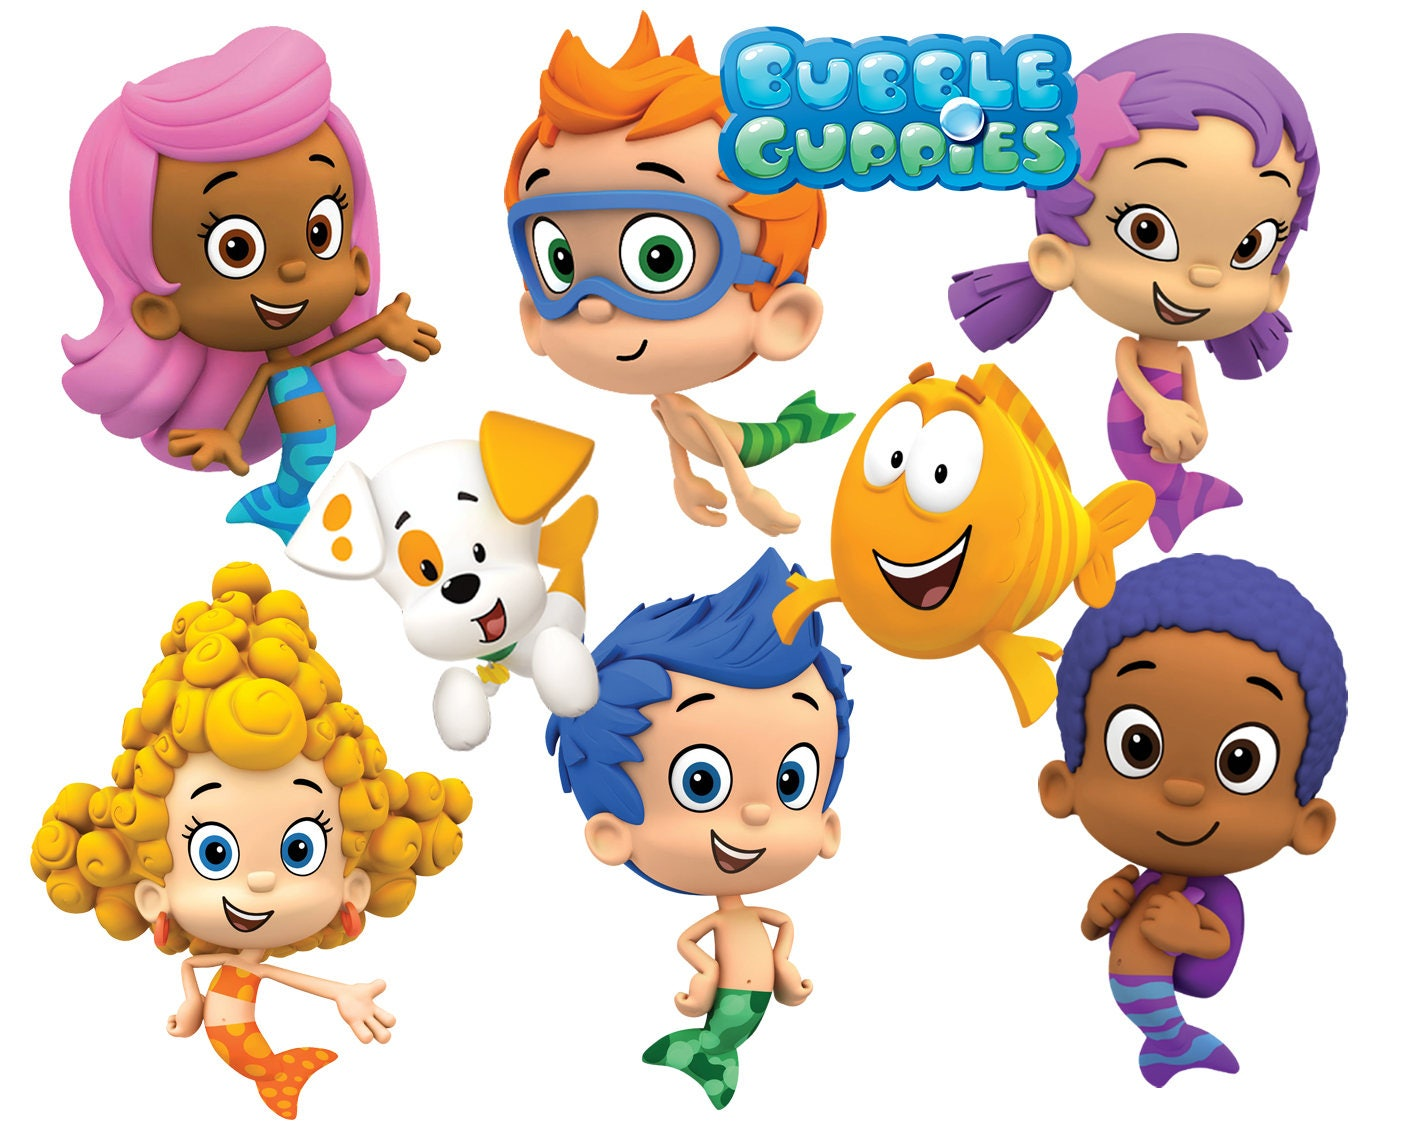 best collection of 75 bubble guppies images 75 high quality